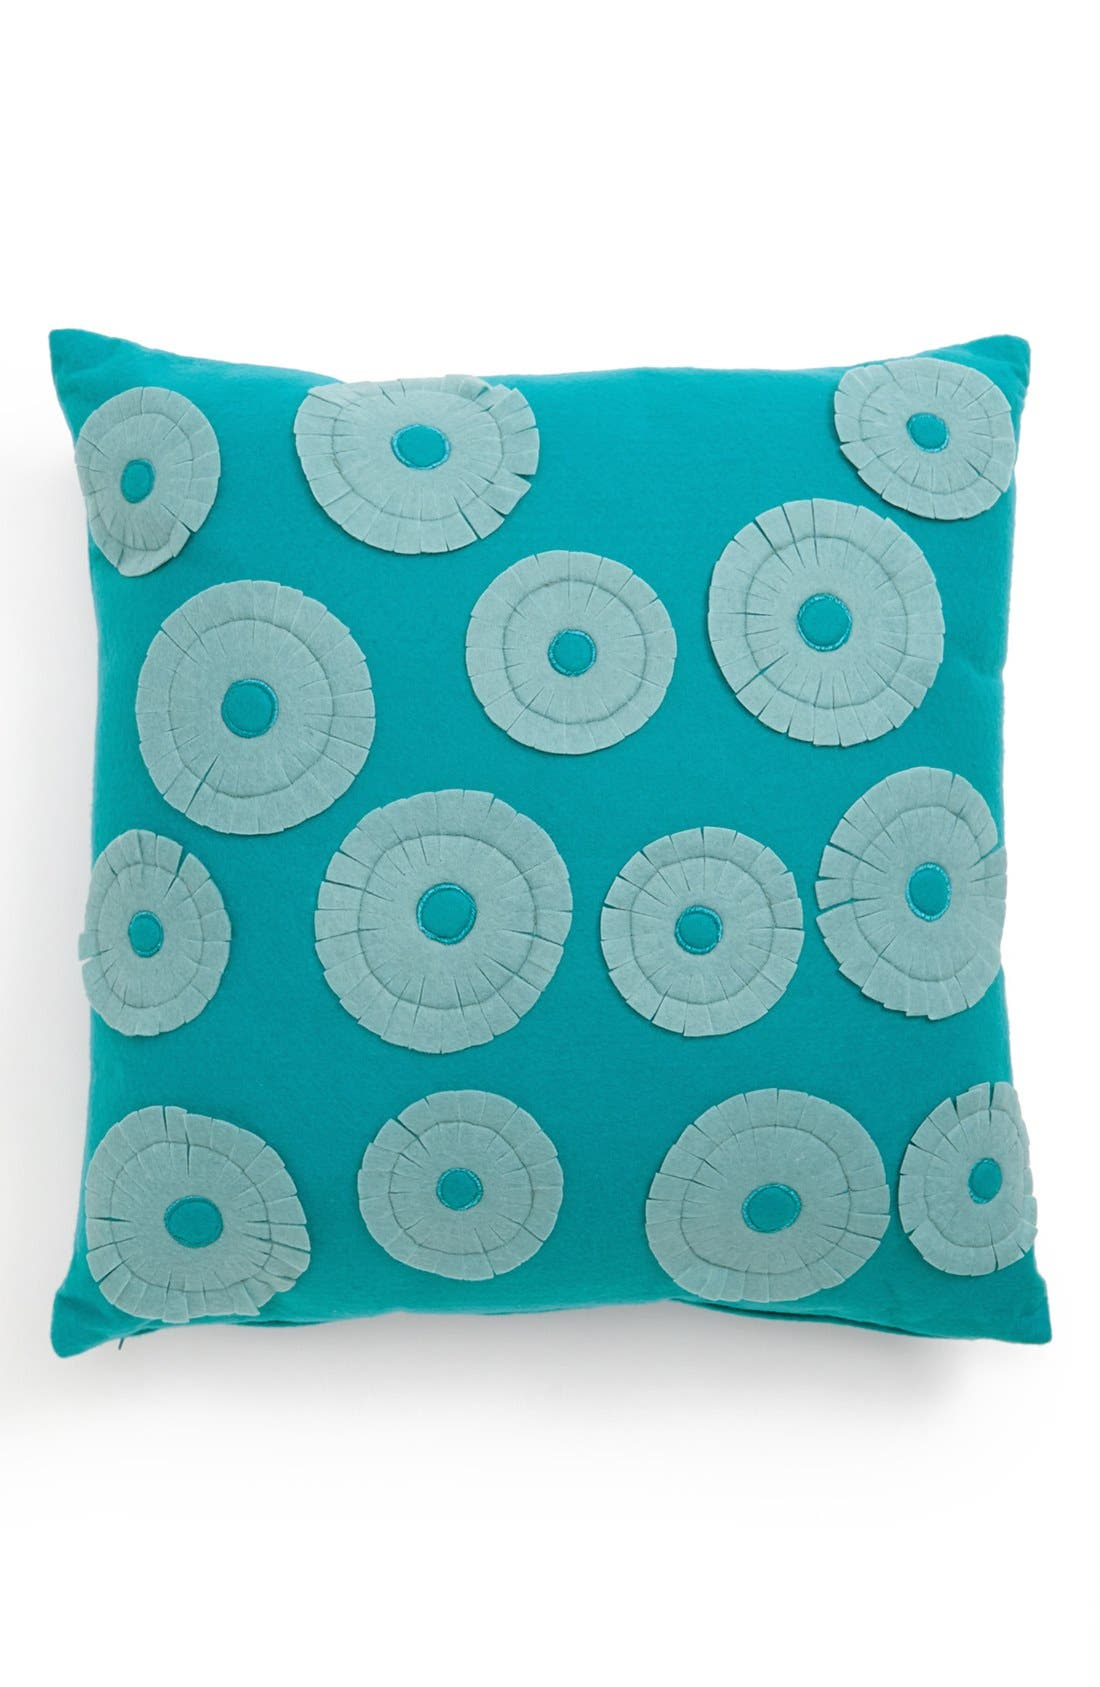 Alternate Image 1 Selected - Mina Victory Floral Appliqué Pillow